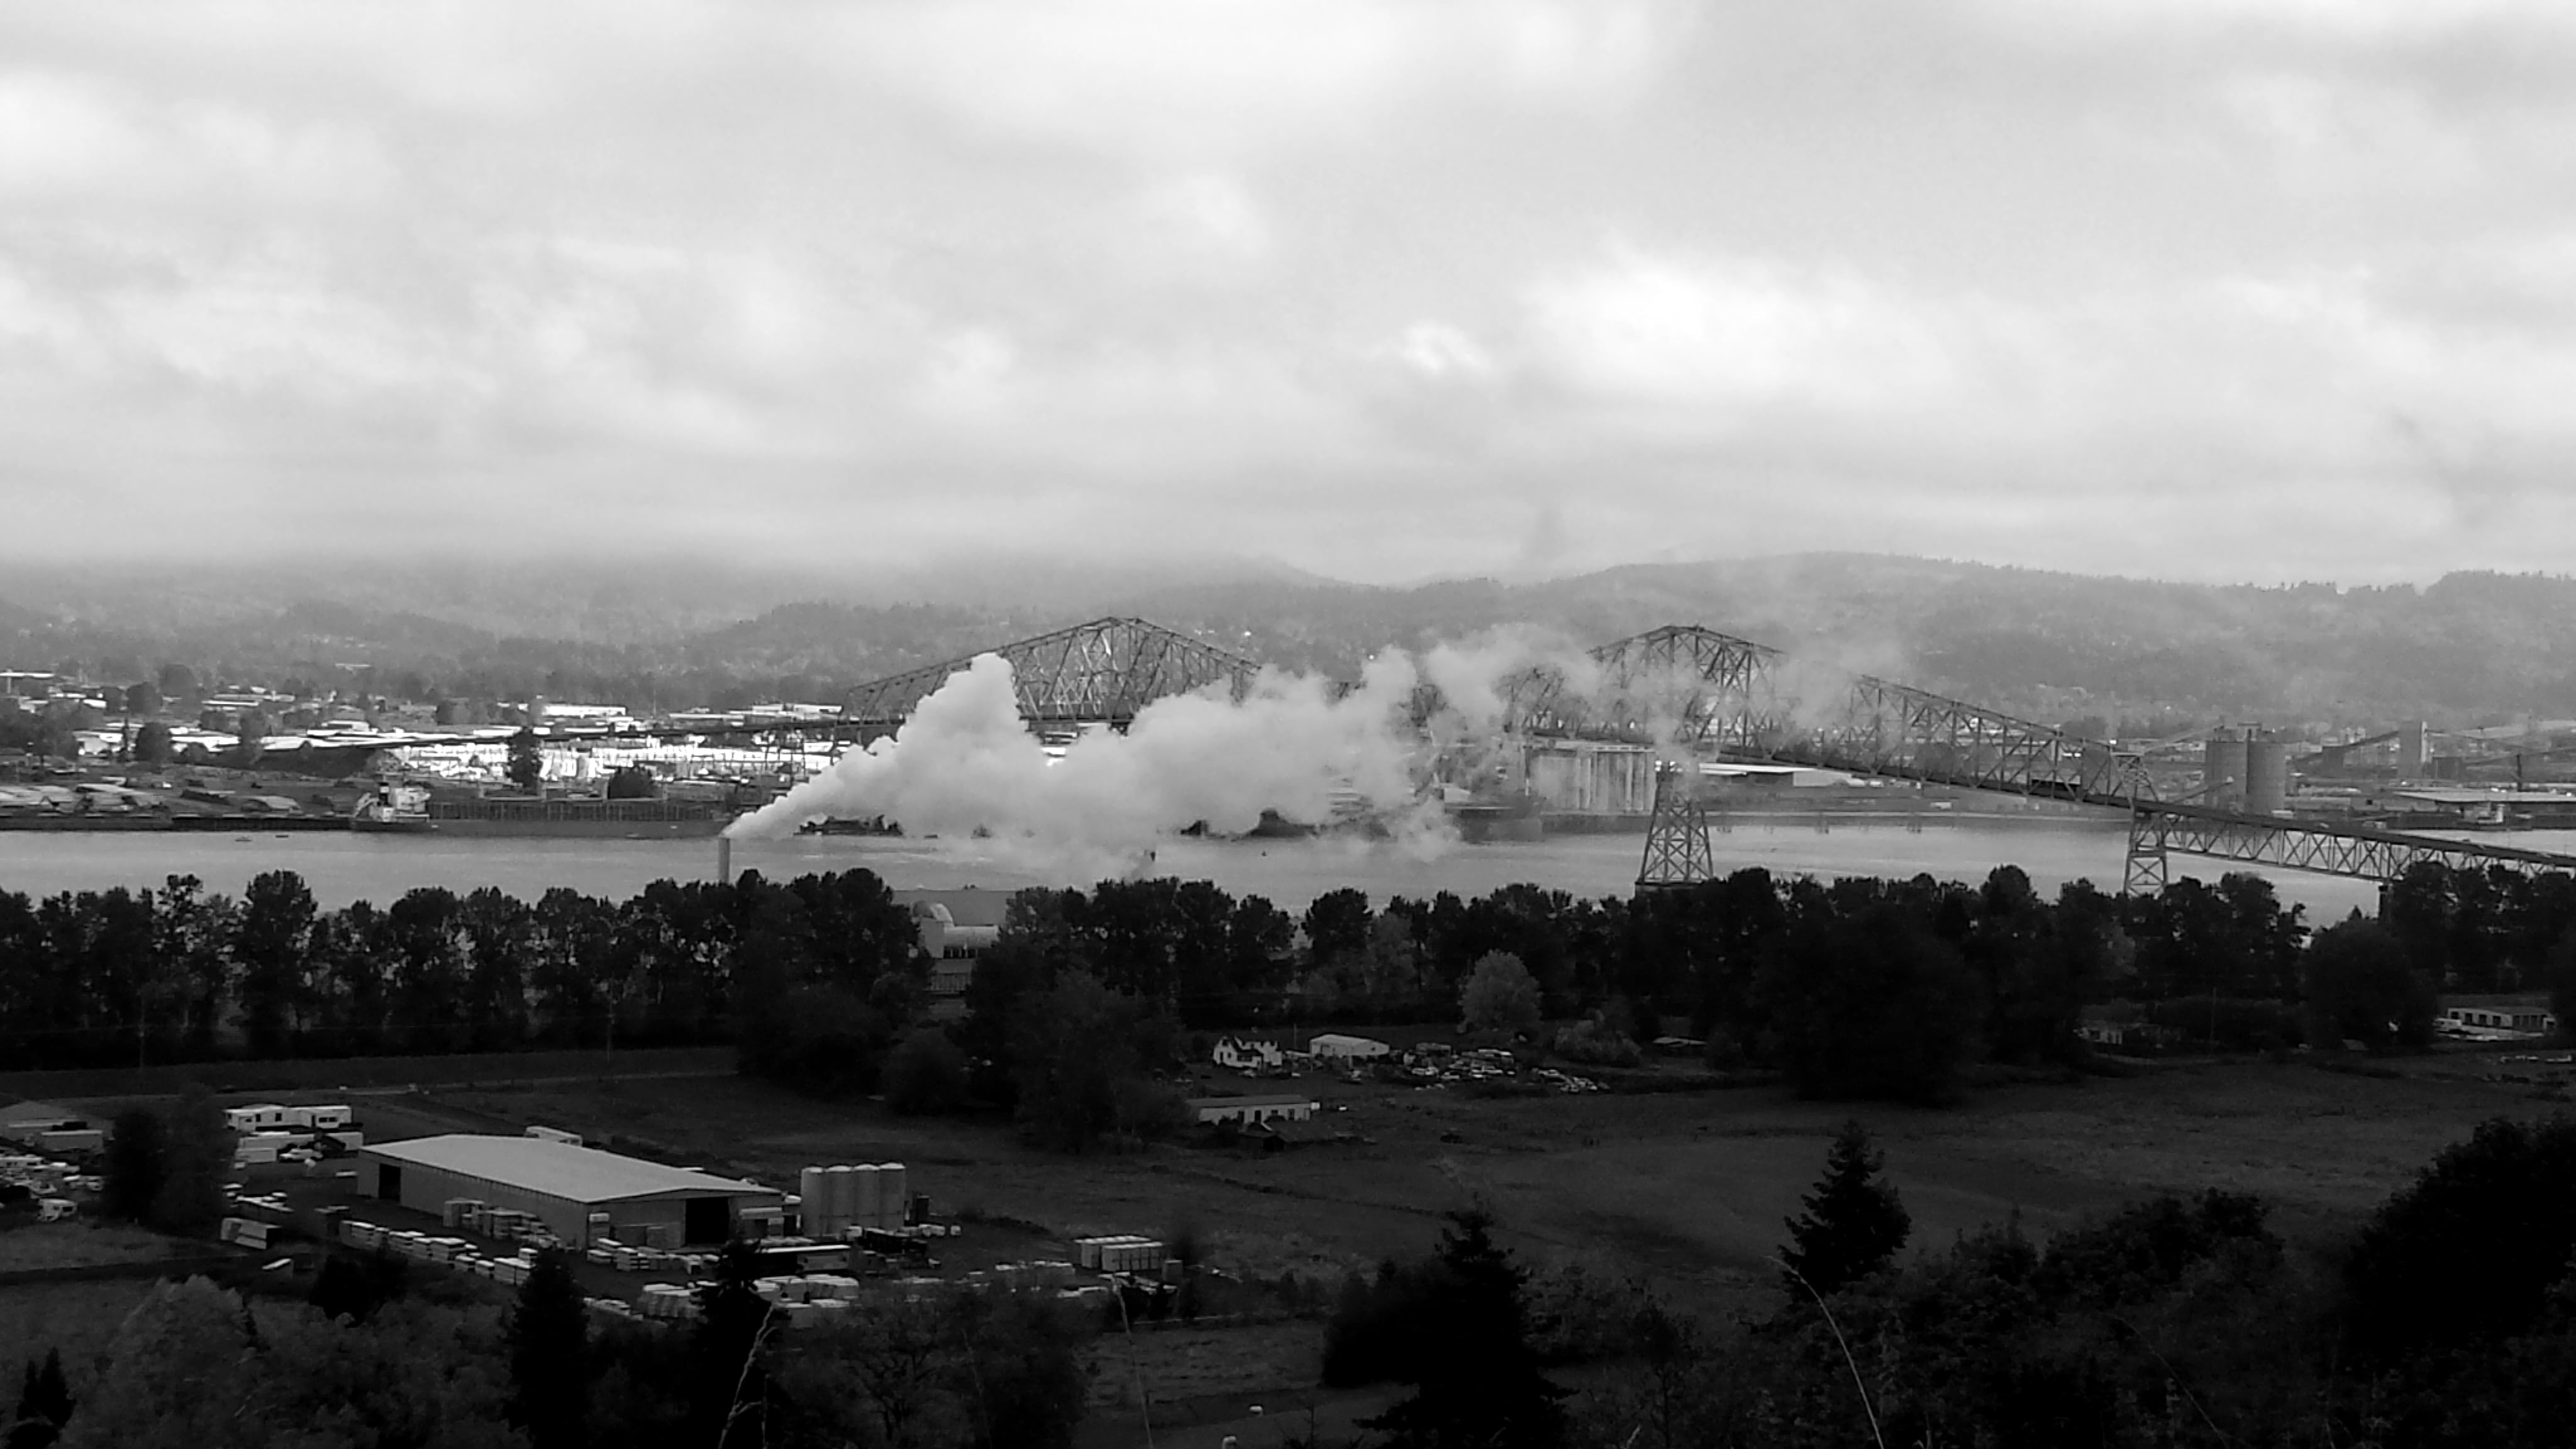 In October 2017, friends invited me to enter the Black & White photo challenge on Facebook. This is a picture of the Longview, WA skyline from the Oregon side on Hwy 30. (Linda Clifton)